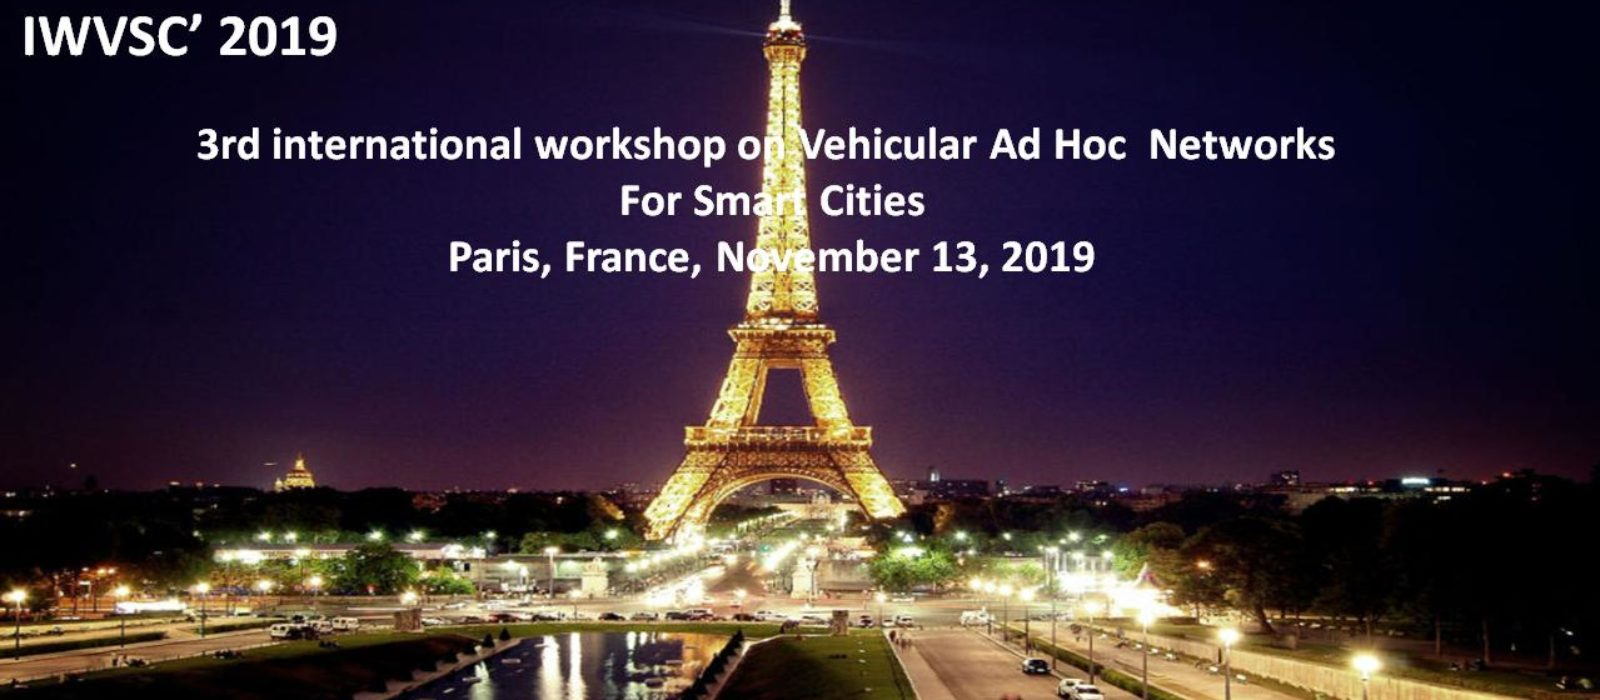 Delivering a keynote at IWVSC'2019 in Paris, France